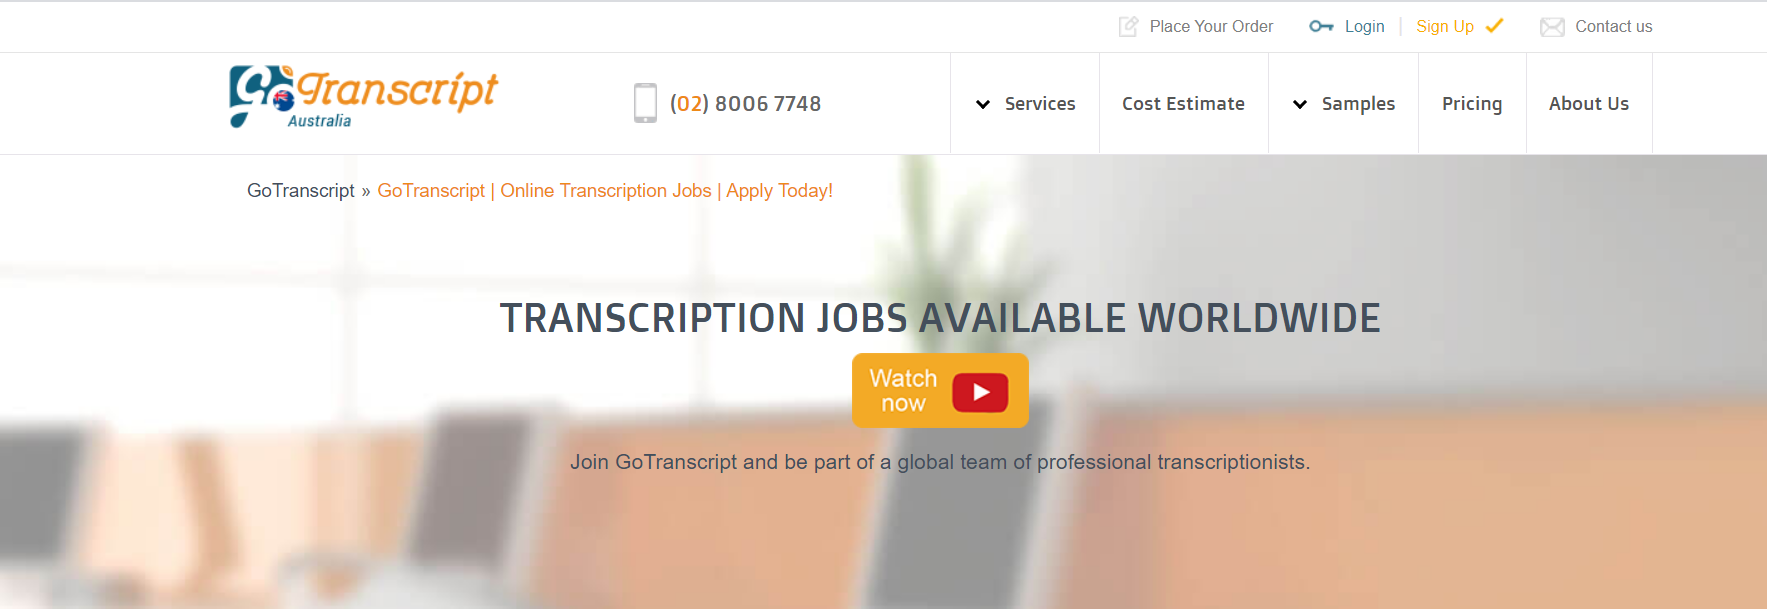 gotranscript jobs